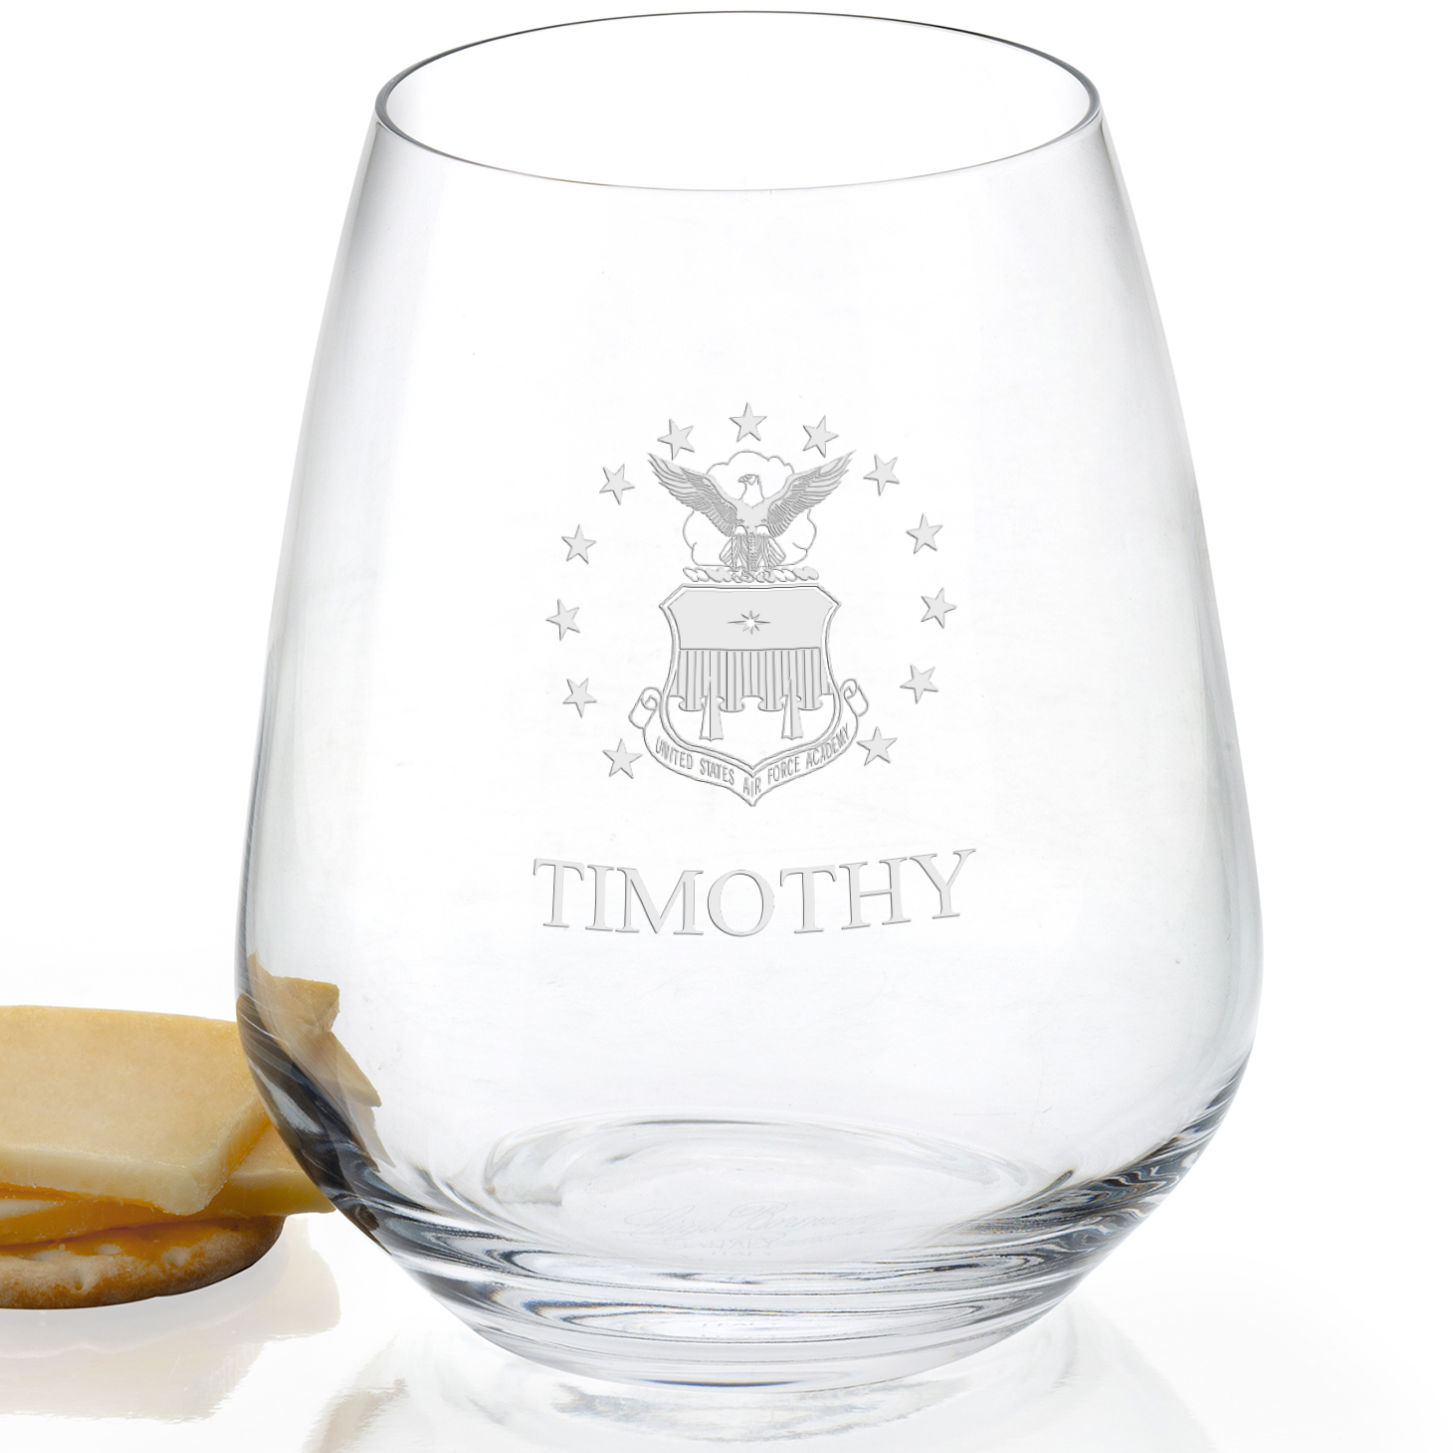 US Air Force Academy Stemless Wine Glasses - Set of 2 - Image 2